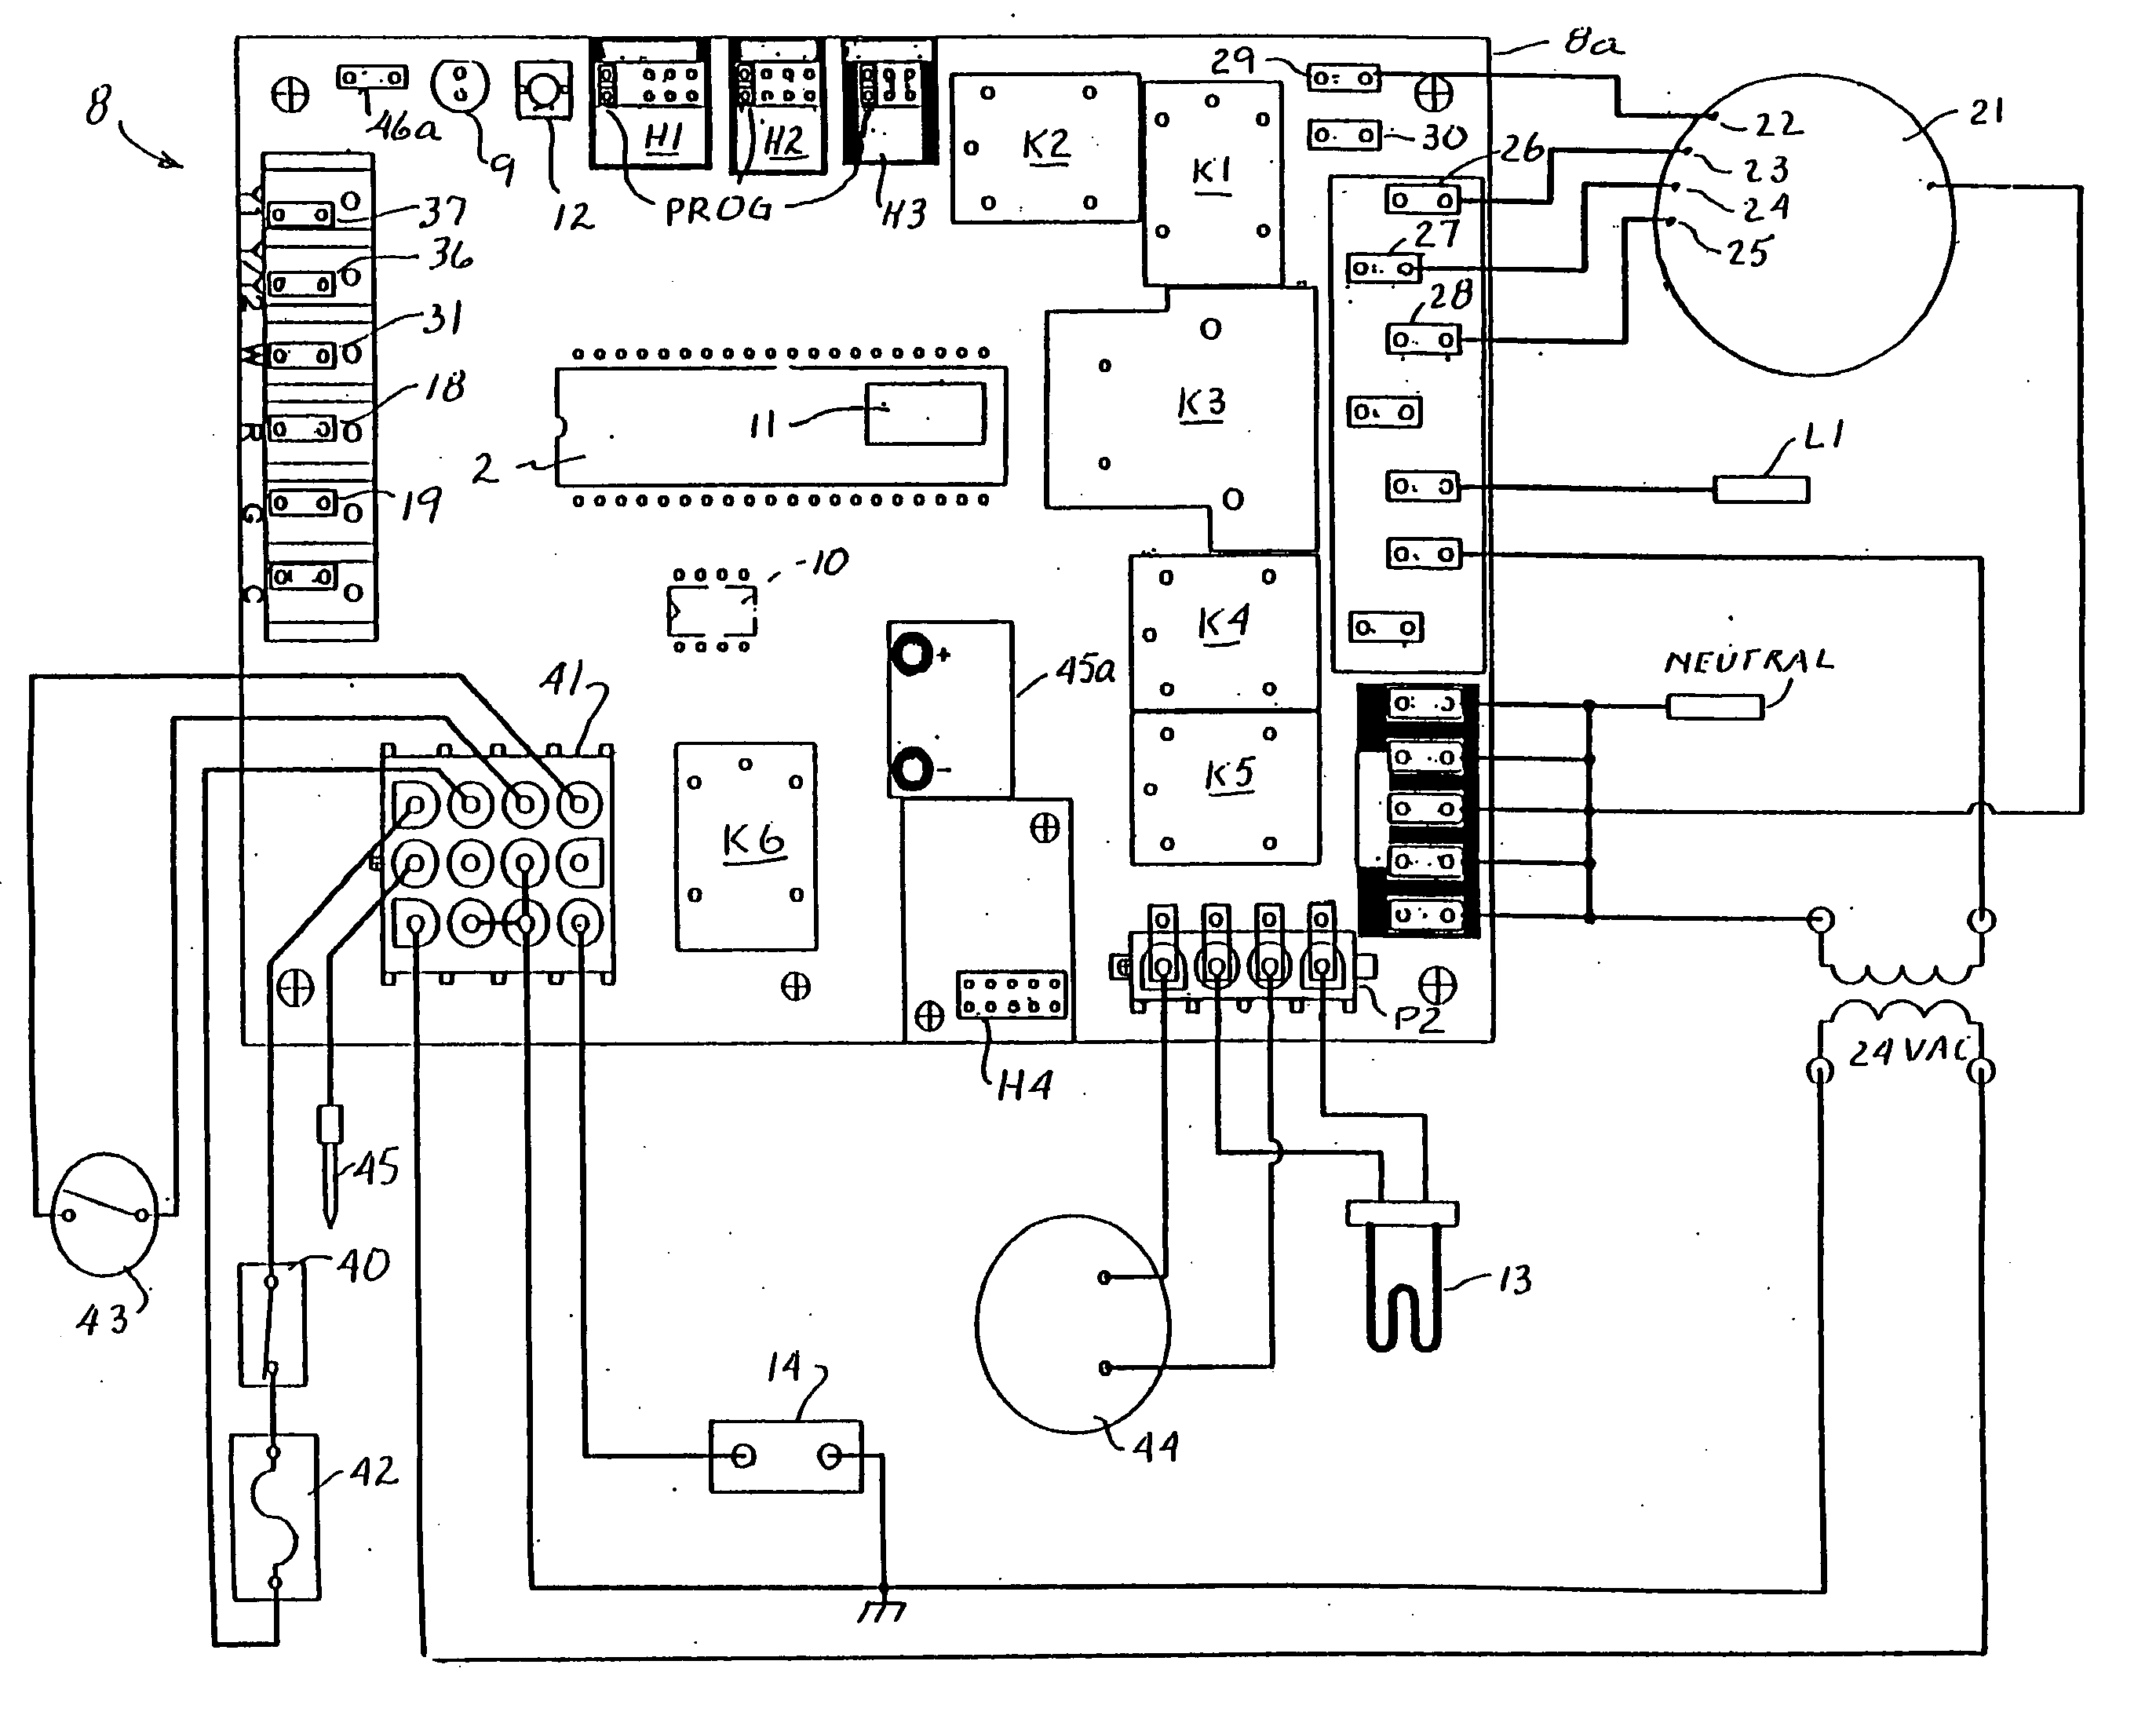 Old Furnace Wiring Diagram - Diagram Schematic Ideas on